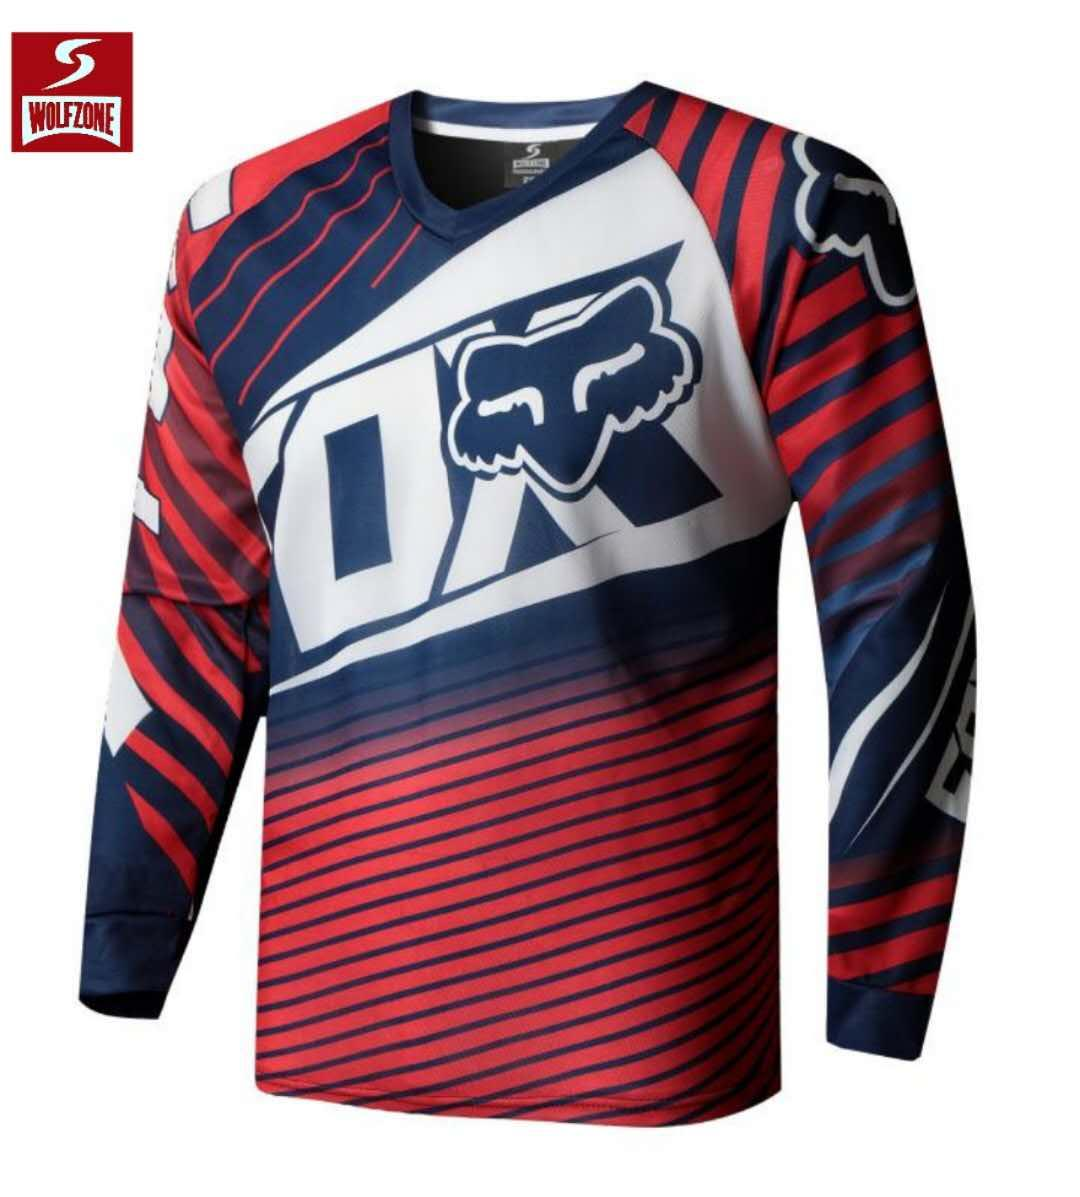 eec168409 Wolf Zone Spandex Fox Longsleeve Men s Sportswear Quick DryFortress Cycling Mountain  Bike Motocross Motorcycle MTB